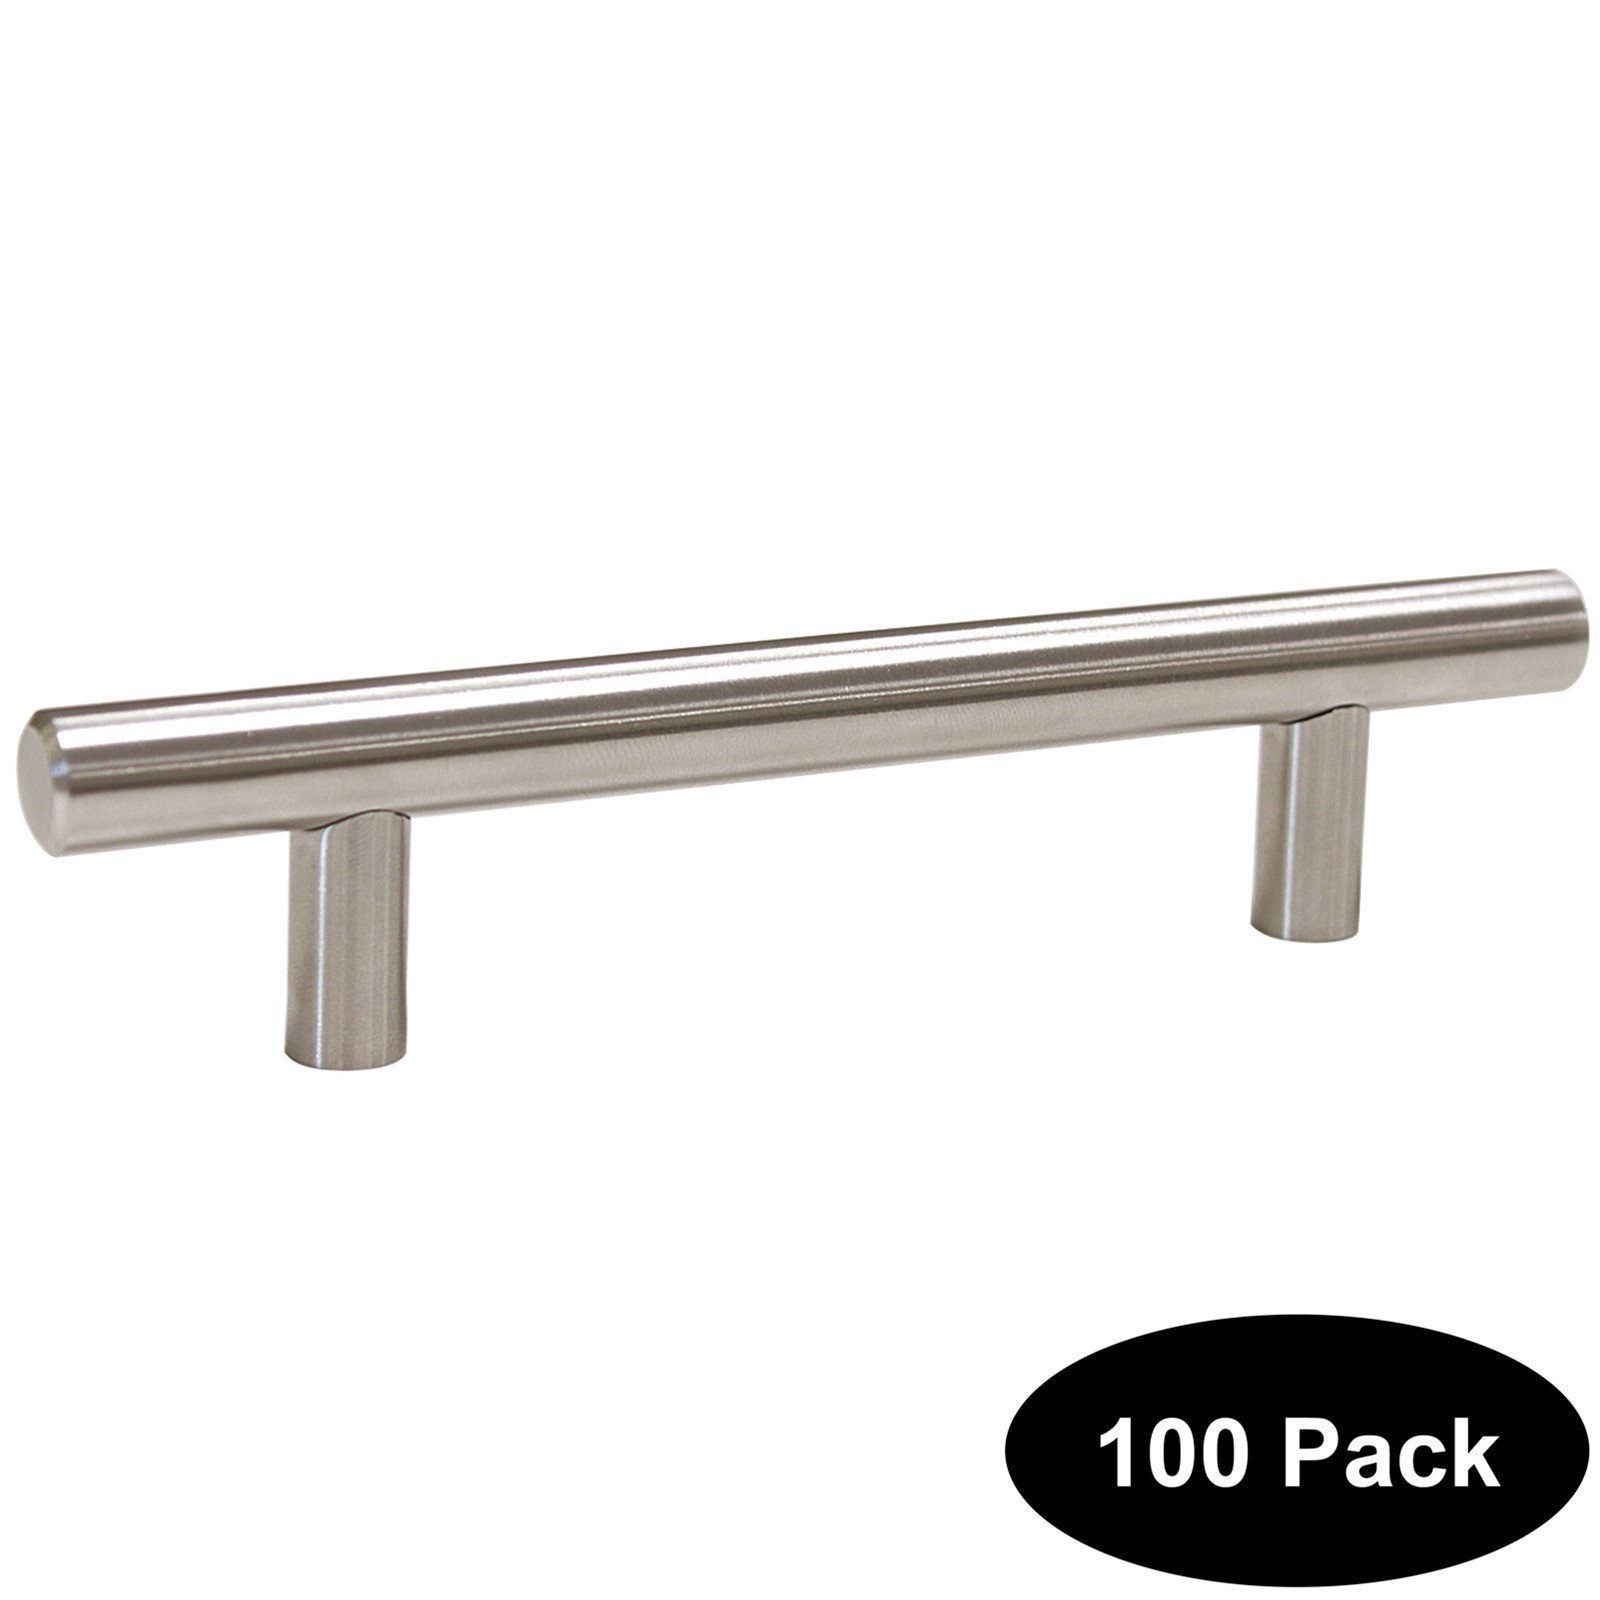 100 PCS 96mm(3.75inch) Hole Centers Stainless Steel Kitchen Cabinet Door Handles and Pulls Cabinet Knobs Length 150mm(6inch) Brushed Nickel